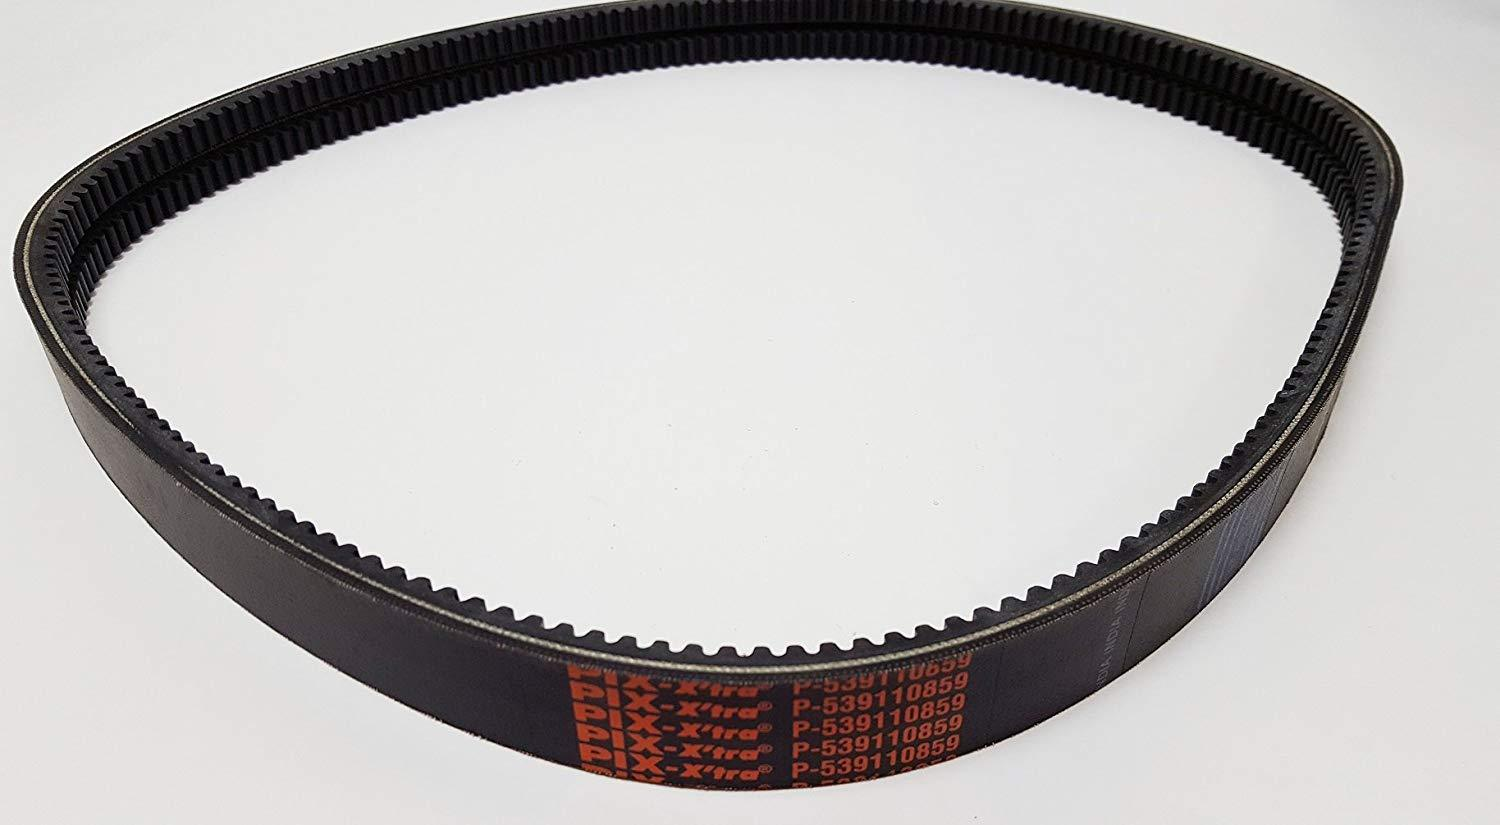 Replacement Belt w/ Kevlar Replaces Husqvarna Drive Belt 539110859 (Raw Edge) - $51.95